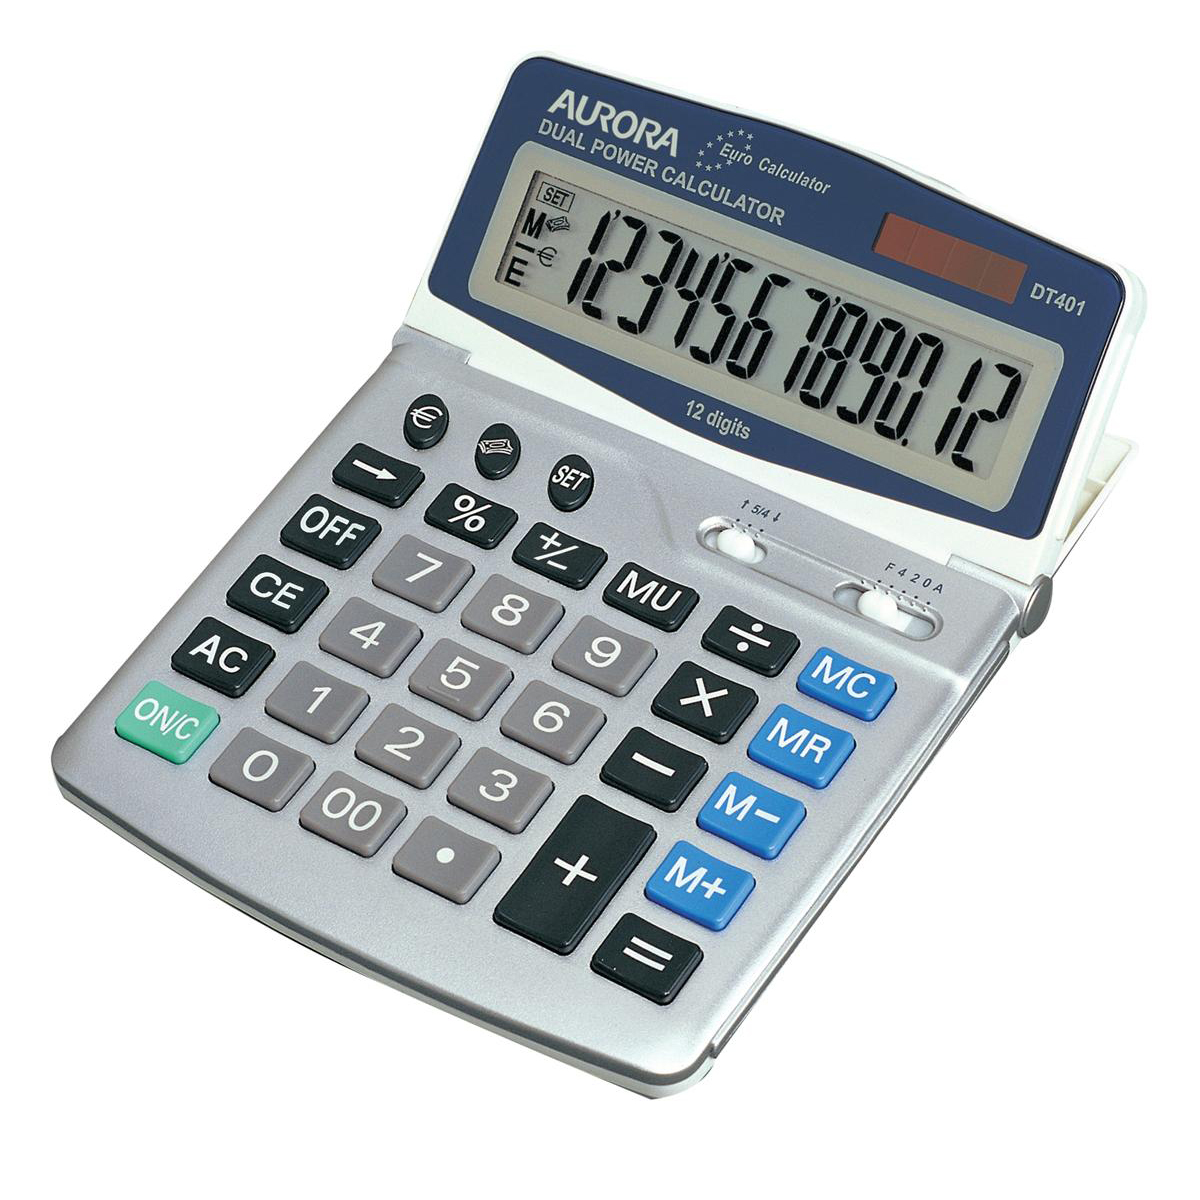 Calculators Aurora Desktop Calculator 12 Digit 4 Key Memory Battery/Solar Power 165x32x228mm Grey Ref DT401